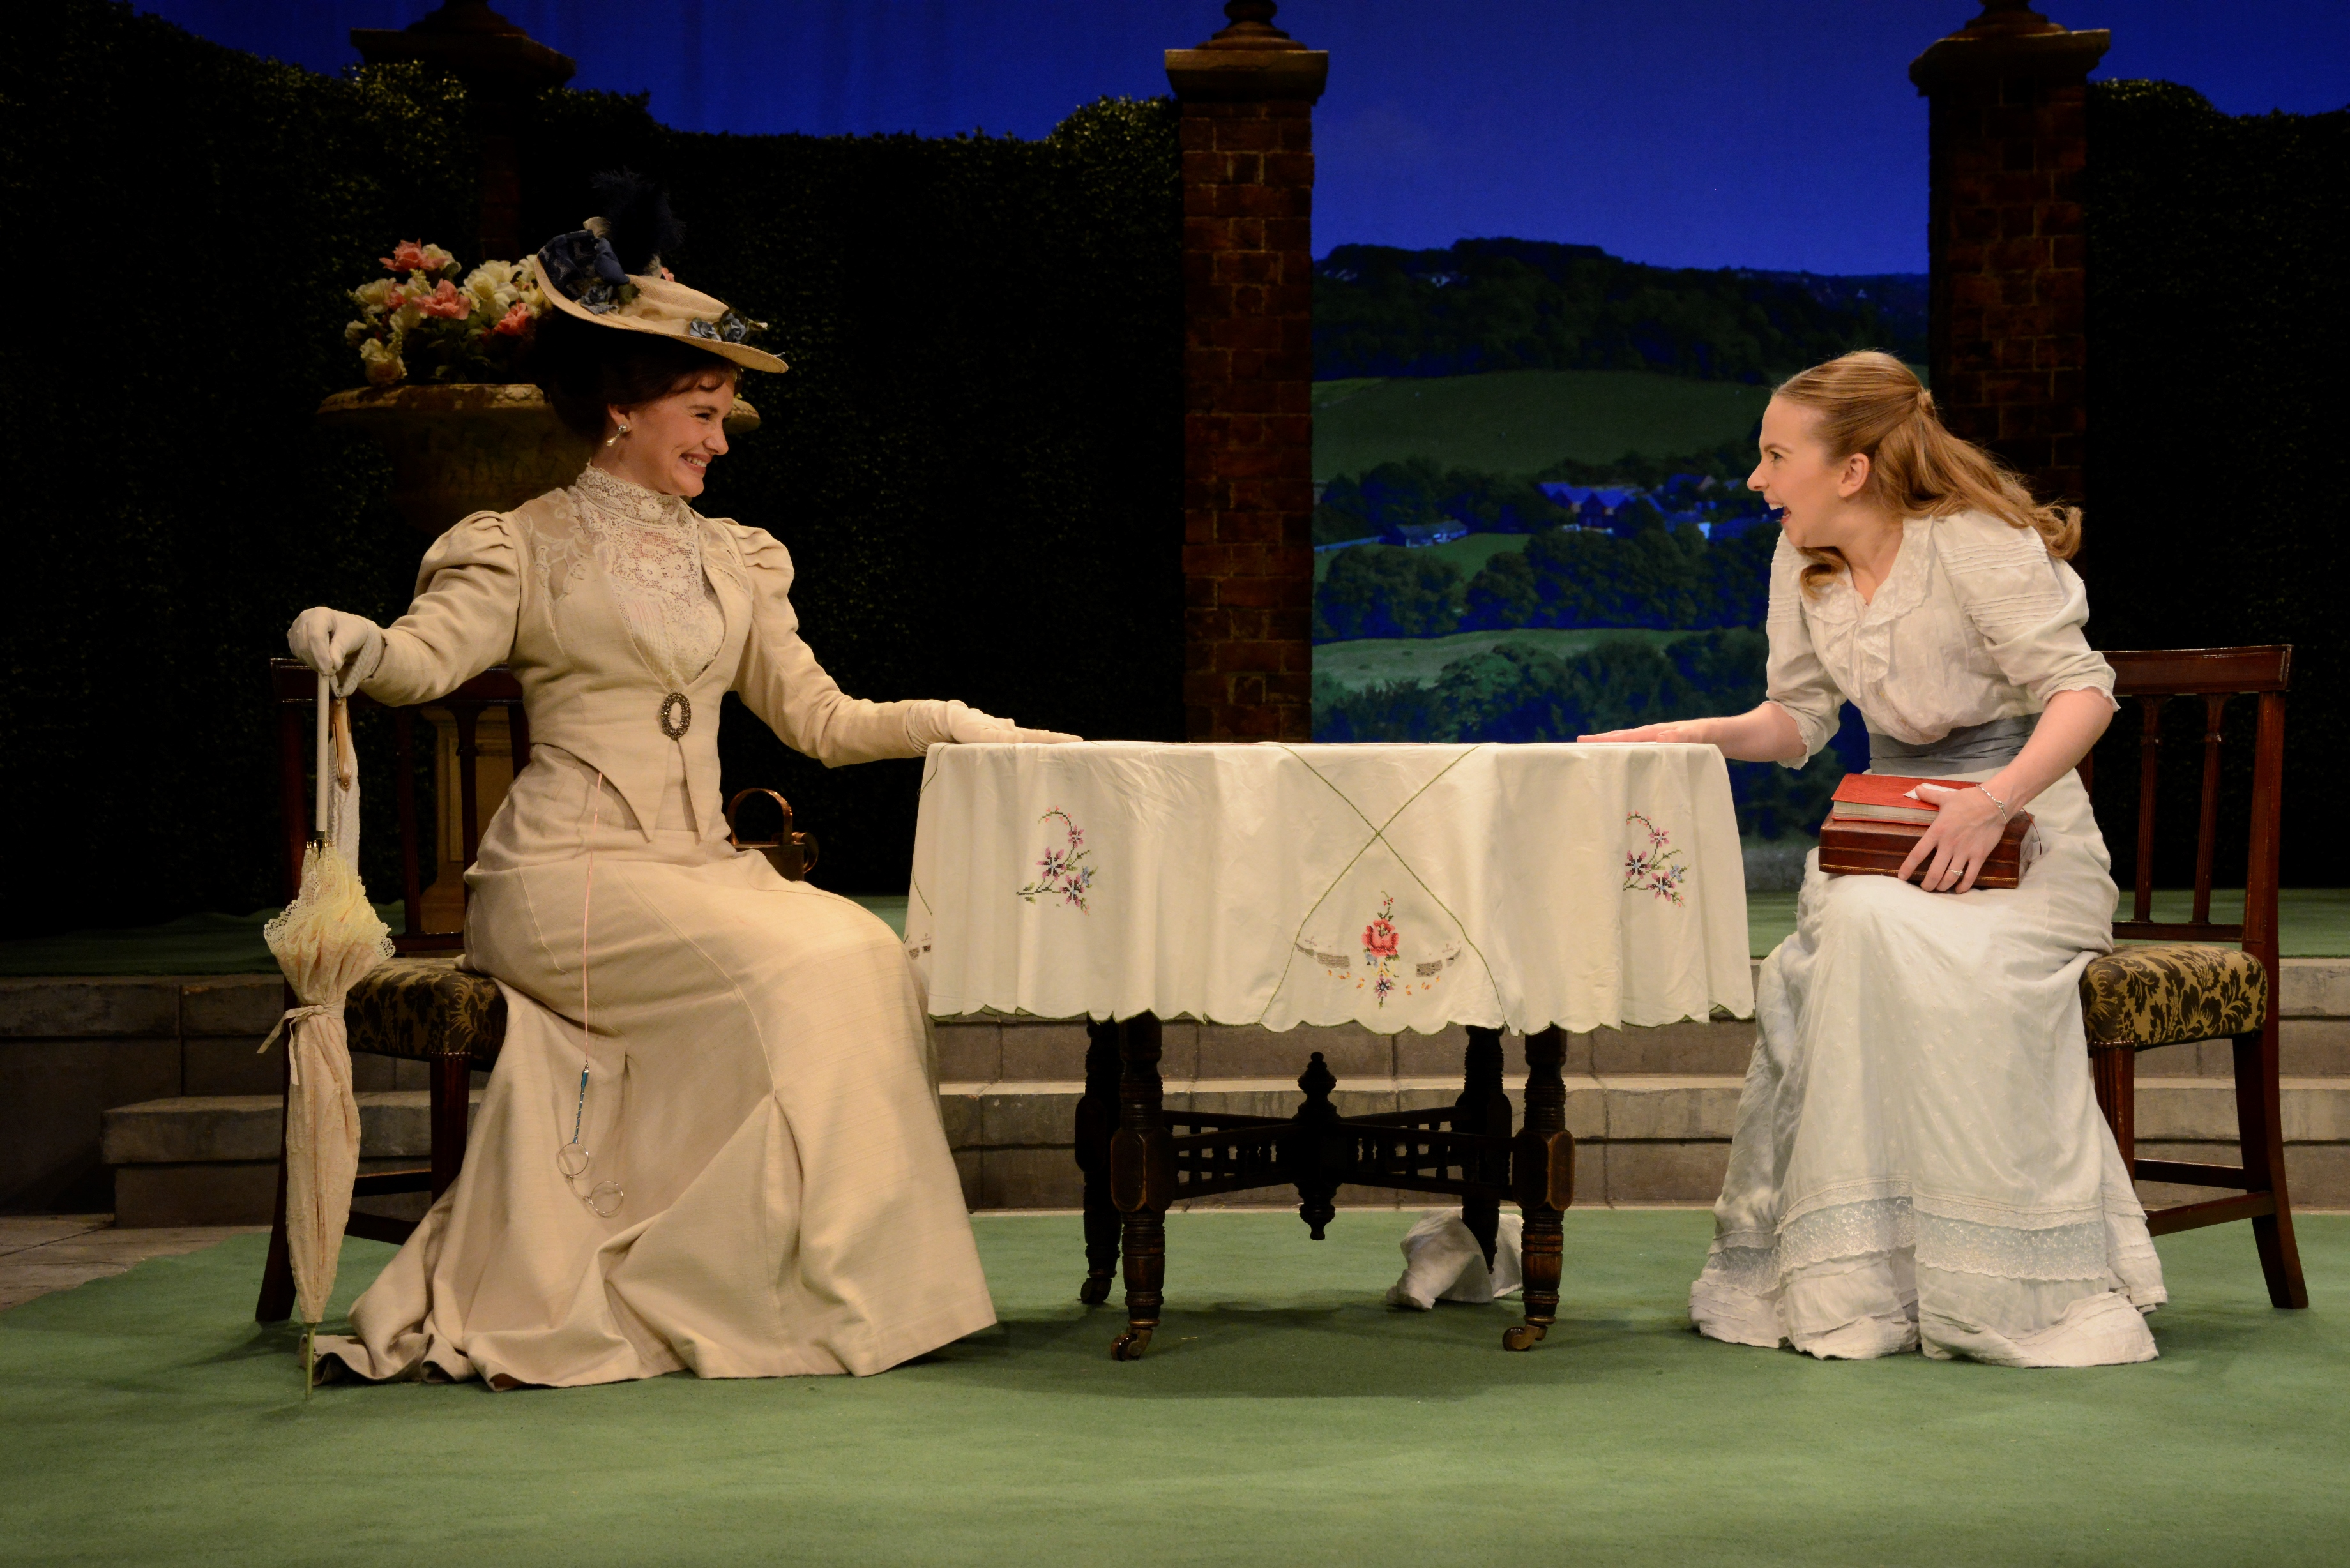 Theatre Preview The Importance Of Being Earnest Fathom Events   Vaudeville Theatre London Dress Rehearsals April The Importance Of Being  Earnest By Oscar Wildedirected By Adrian